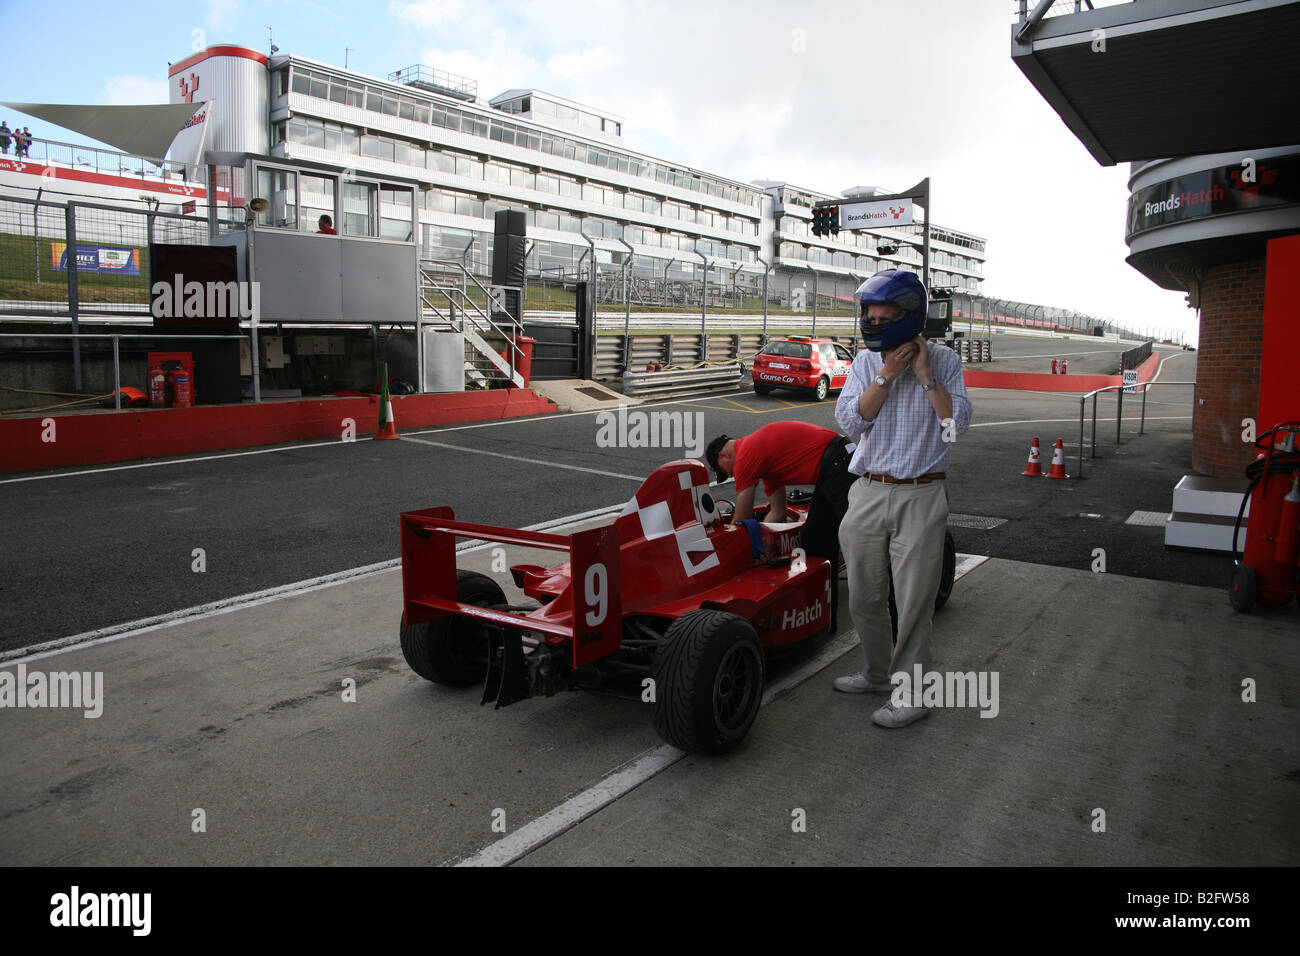 Man walking from a racing car after a drive at Brands Hatch - Stock Image